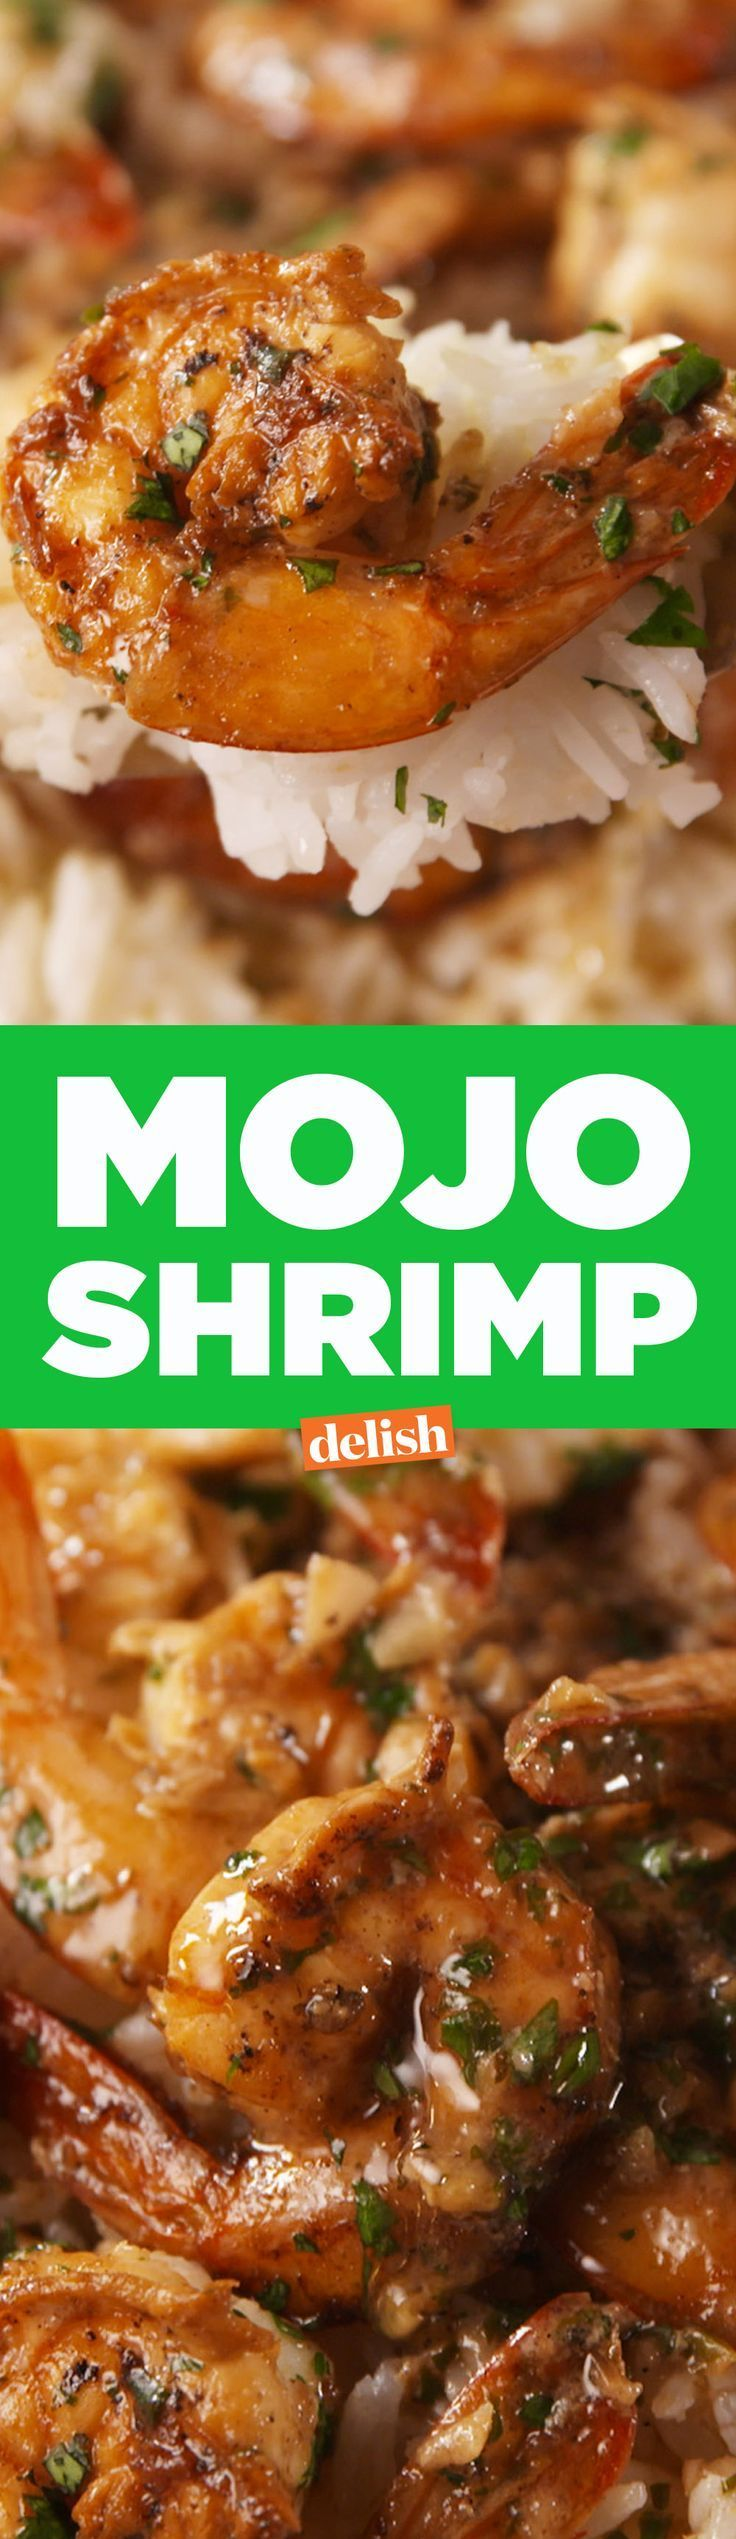 This Mojo Shrimp will really get you going. Get the recipe on Delish.com. #seafoodrecipes